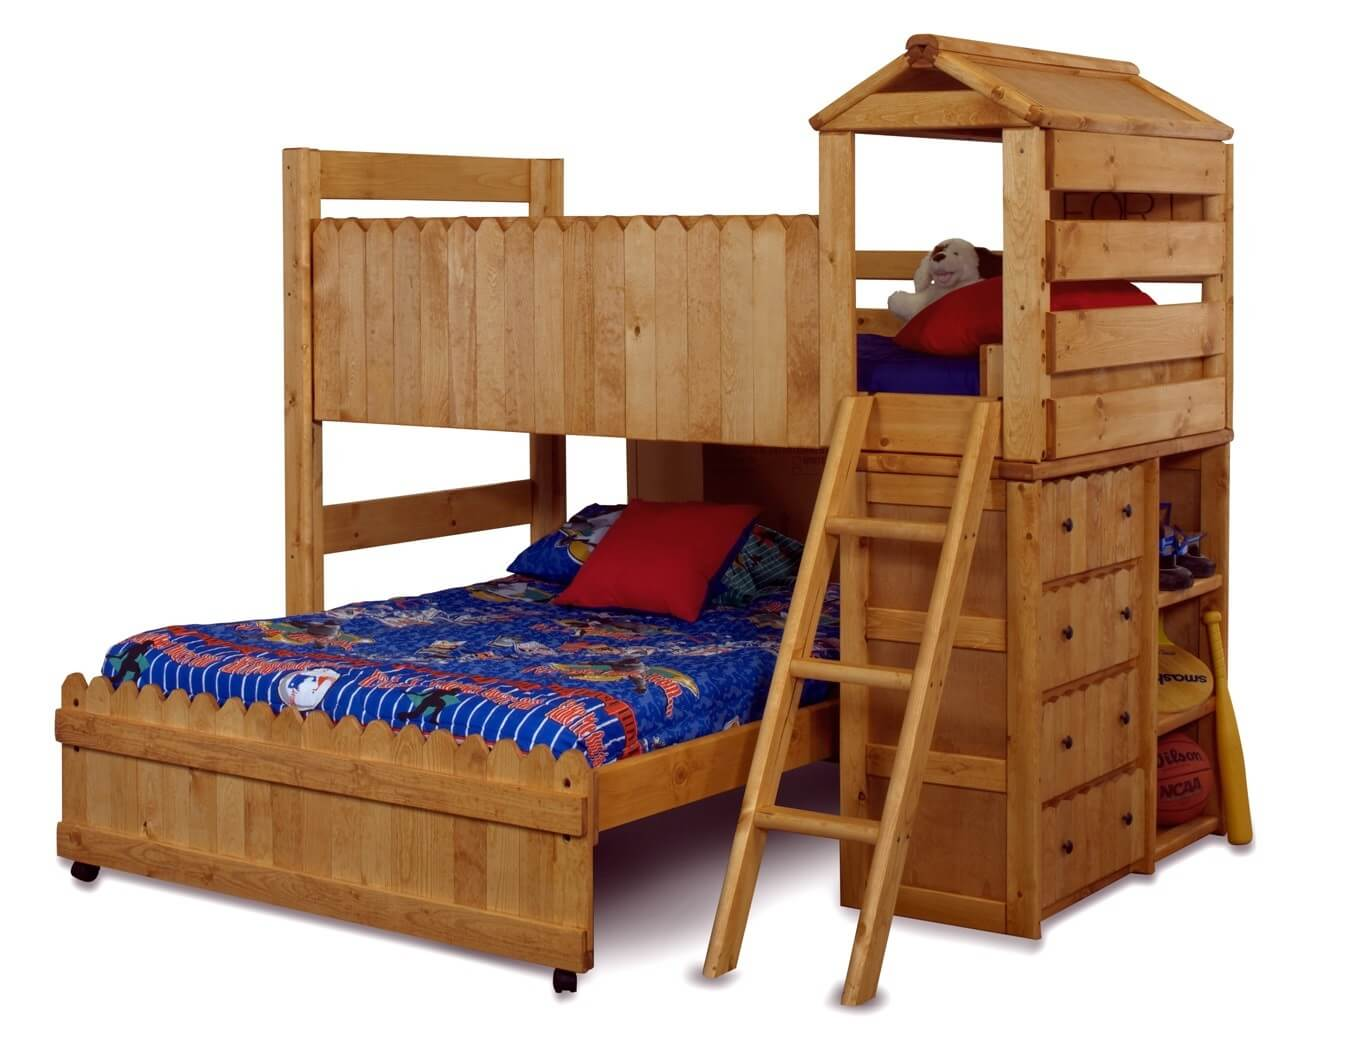 Solid pine twin over full bed with a fort theme design which is fun for kids. This unit offers fewer features than others in our gallery since it's a full size bed on the bottom. Only one side of the unit offers storage of any kind.